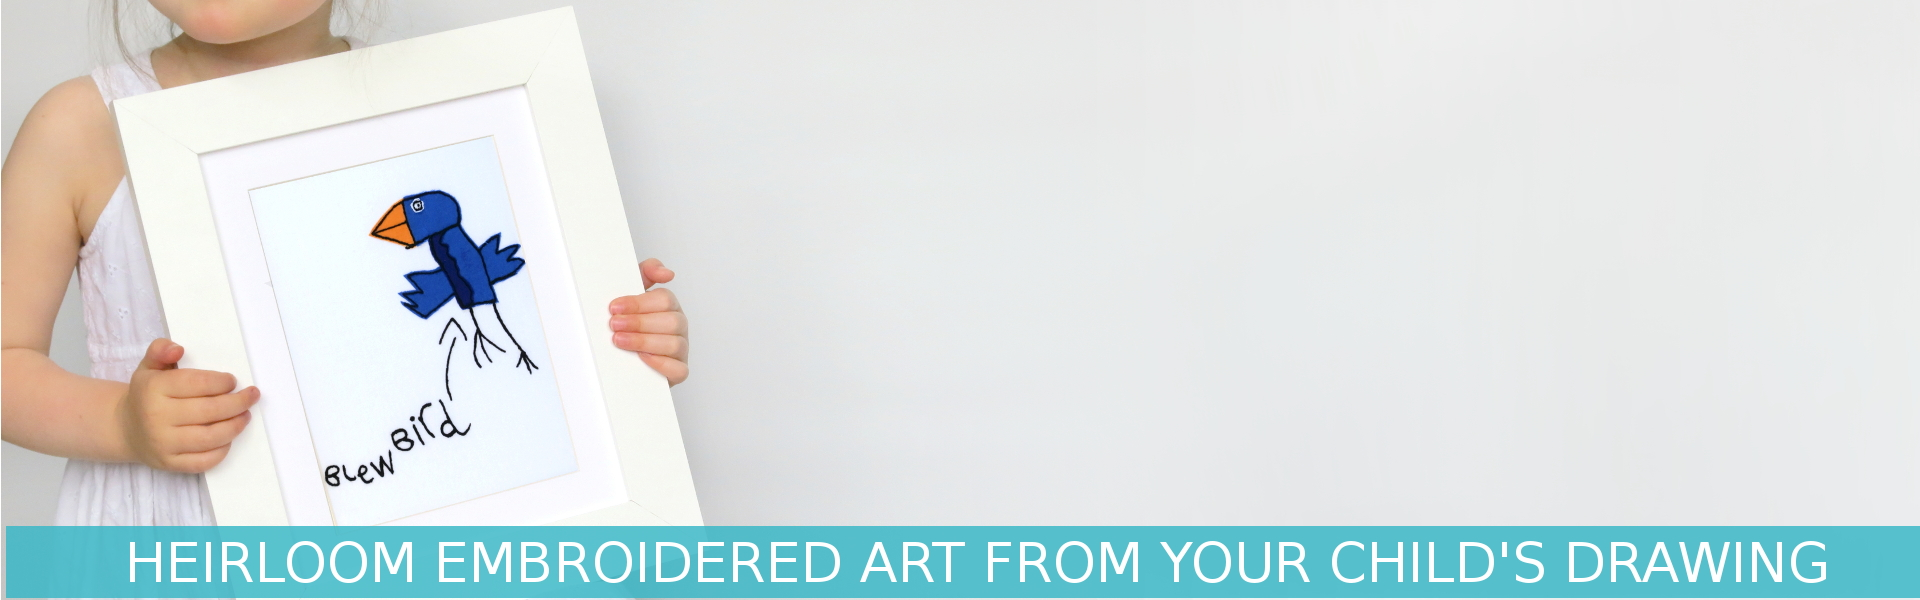 Custom embroidery service to make embroidered art from your child's art